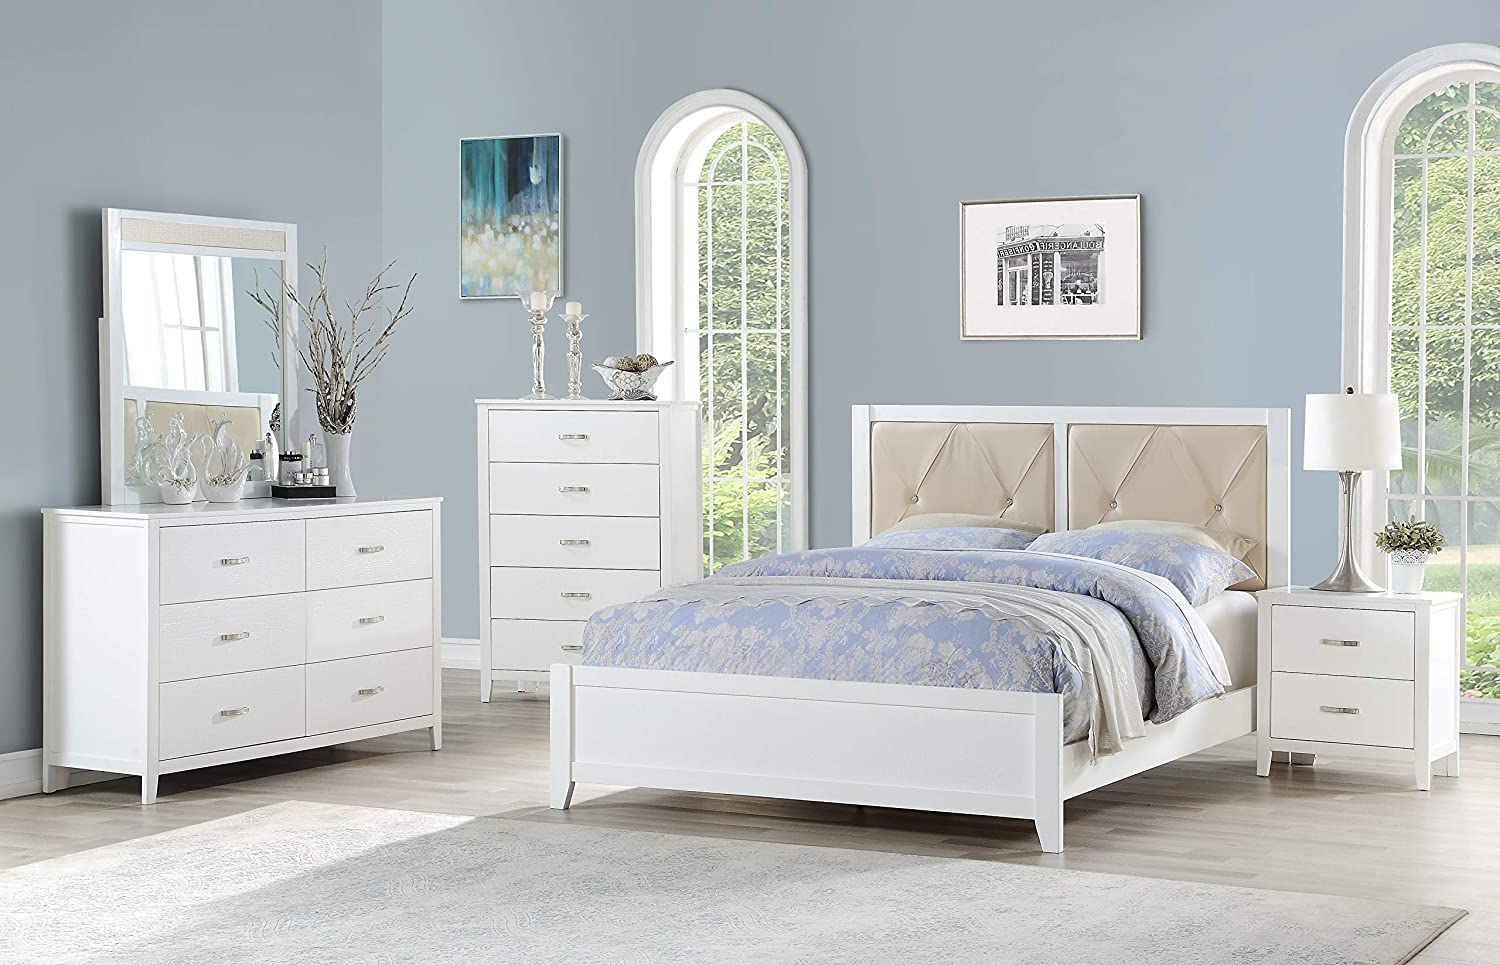 Amazon com esofastore modern classic beautiful white 4pc set bedroom furniture queen size bed dresser mirror nightstand faux leather tufted hb kitchen